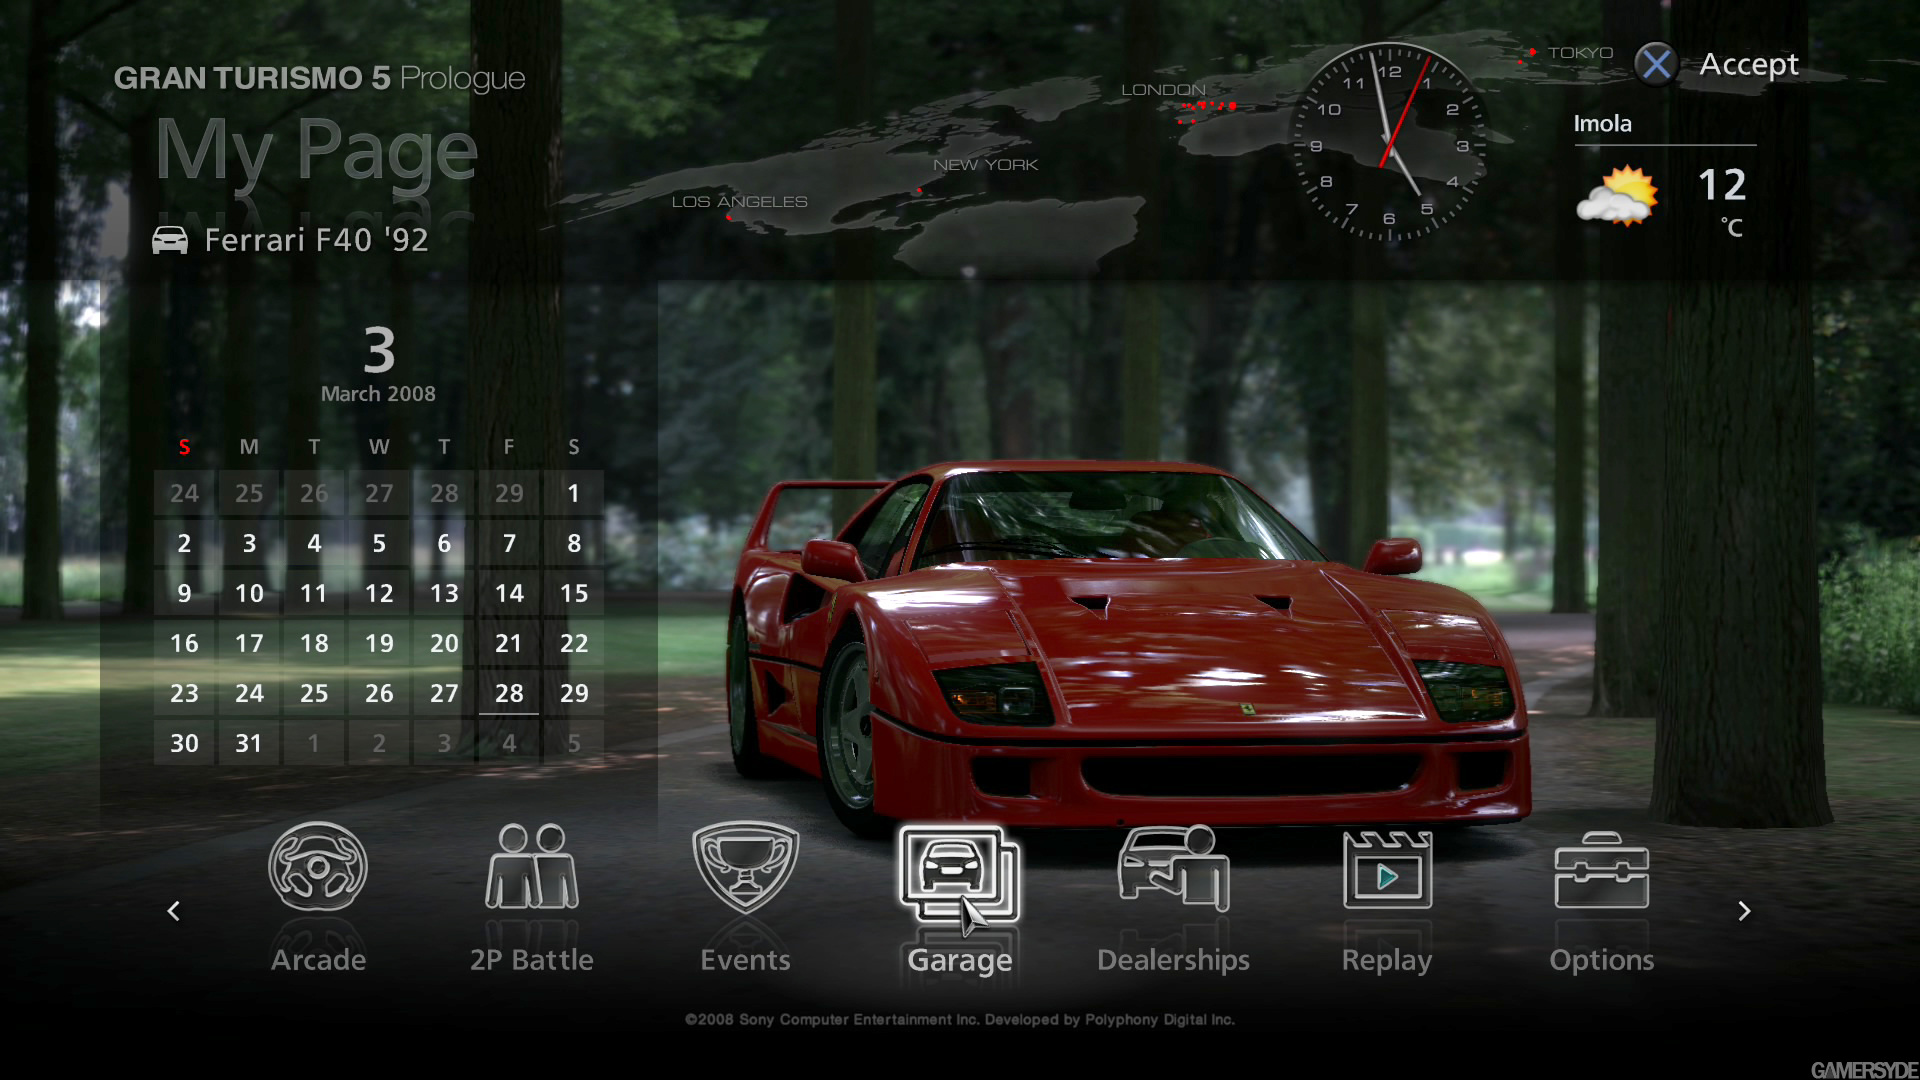 3 gran turismo 5 prologue hd wallpapers backgrounds wallpaper abyss. Black Bedroom Furniture Sets. Home Design Ideas